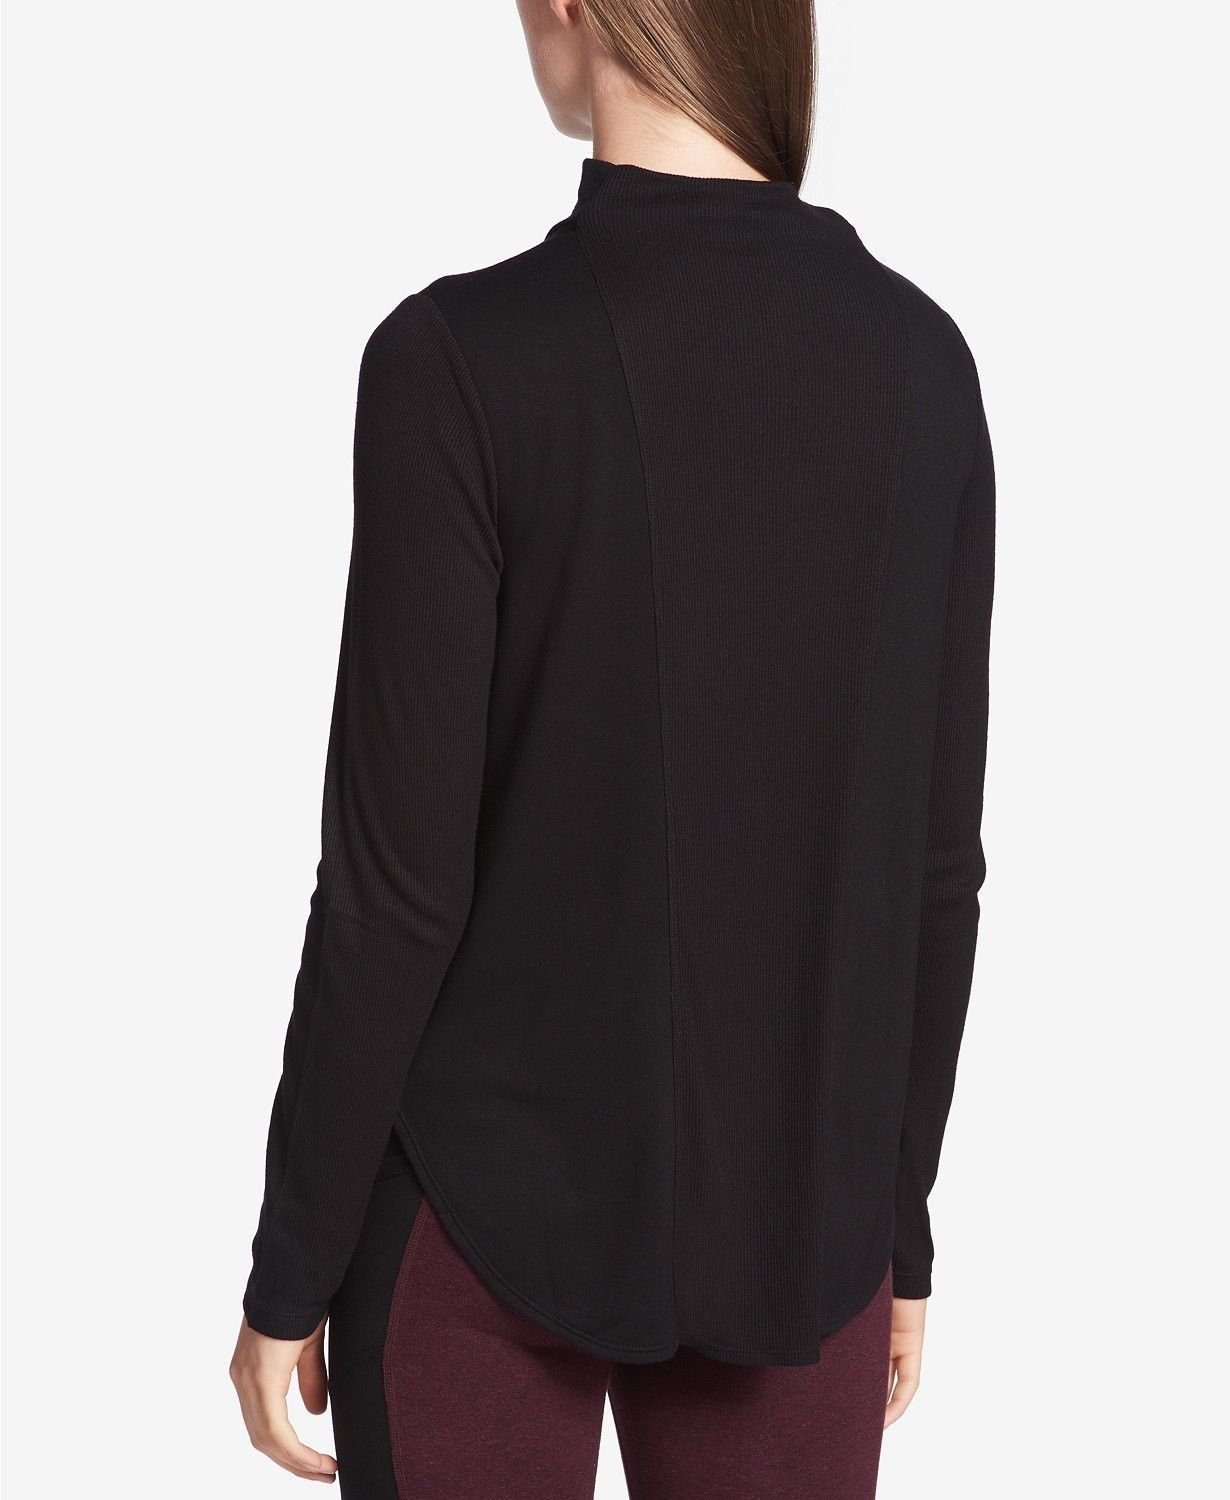 Calvin Klein Performance Mock-Neck Top, Size S, MSRP $59